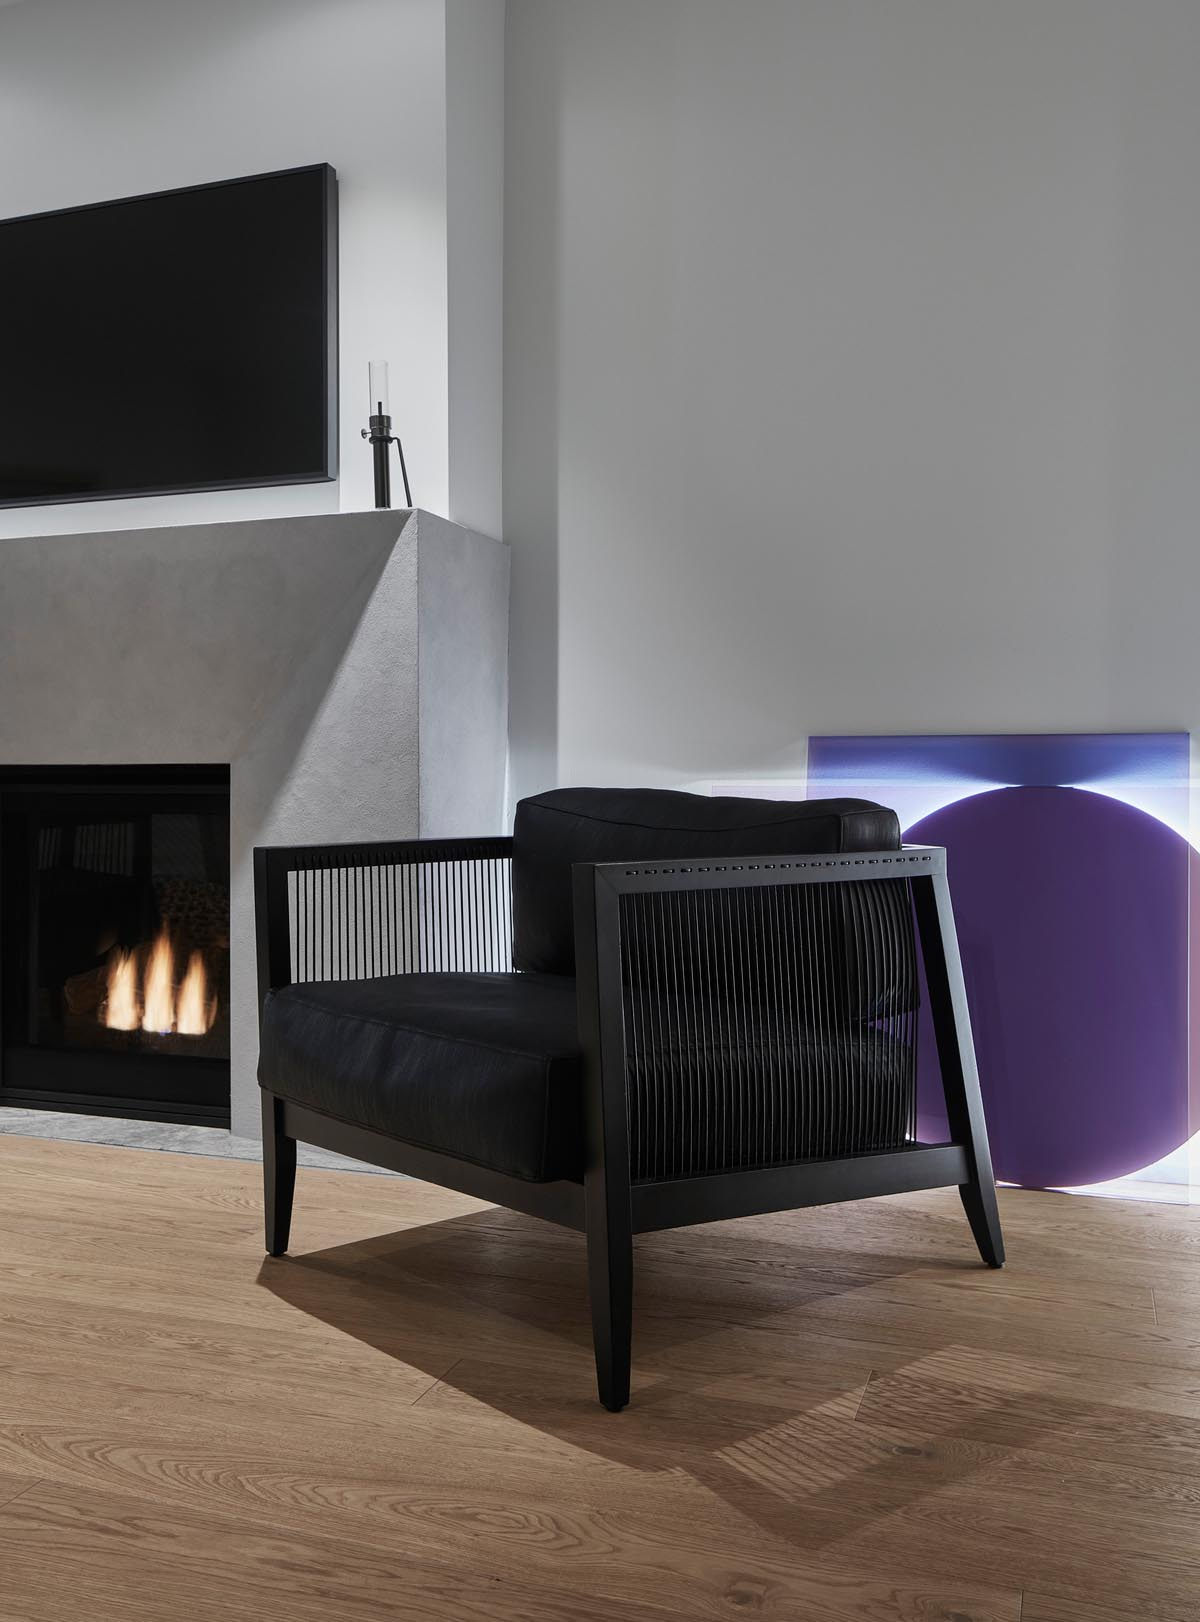 A modern living room with a black armchair, a grey fireplace surround, and wood floors.